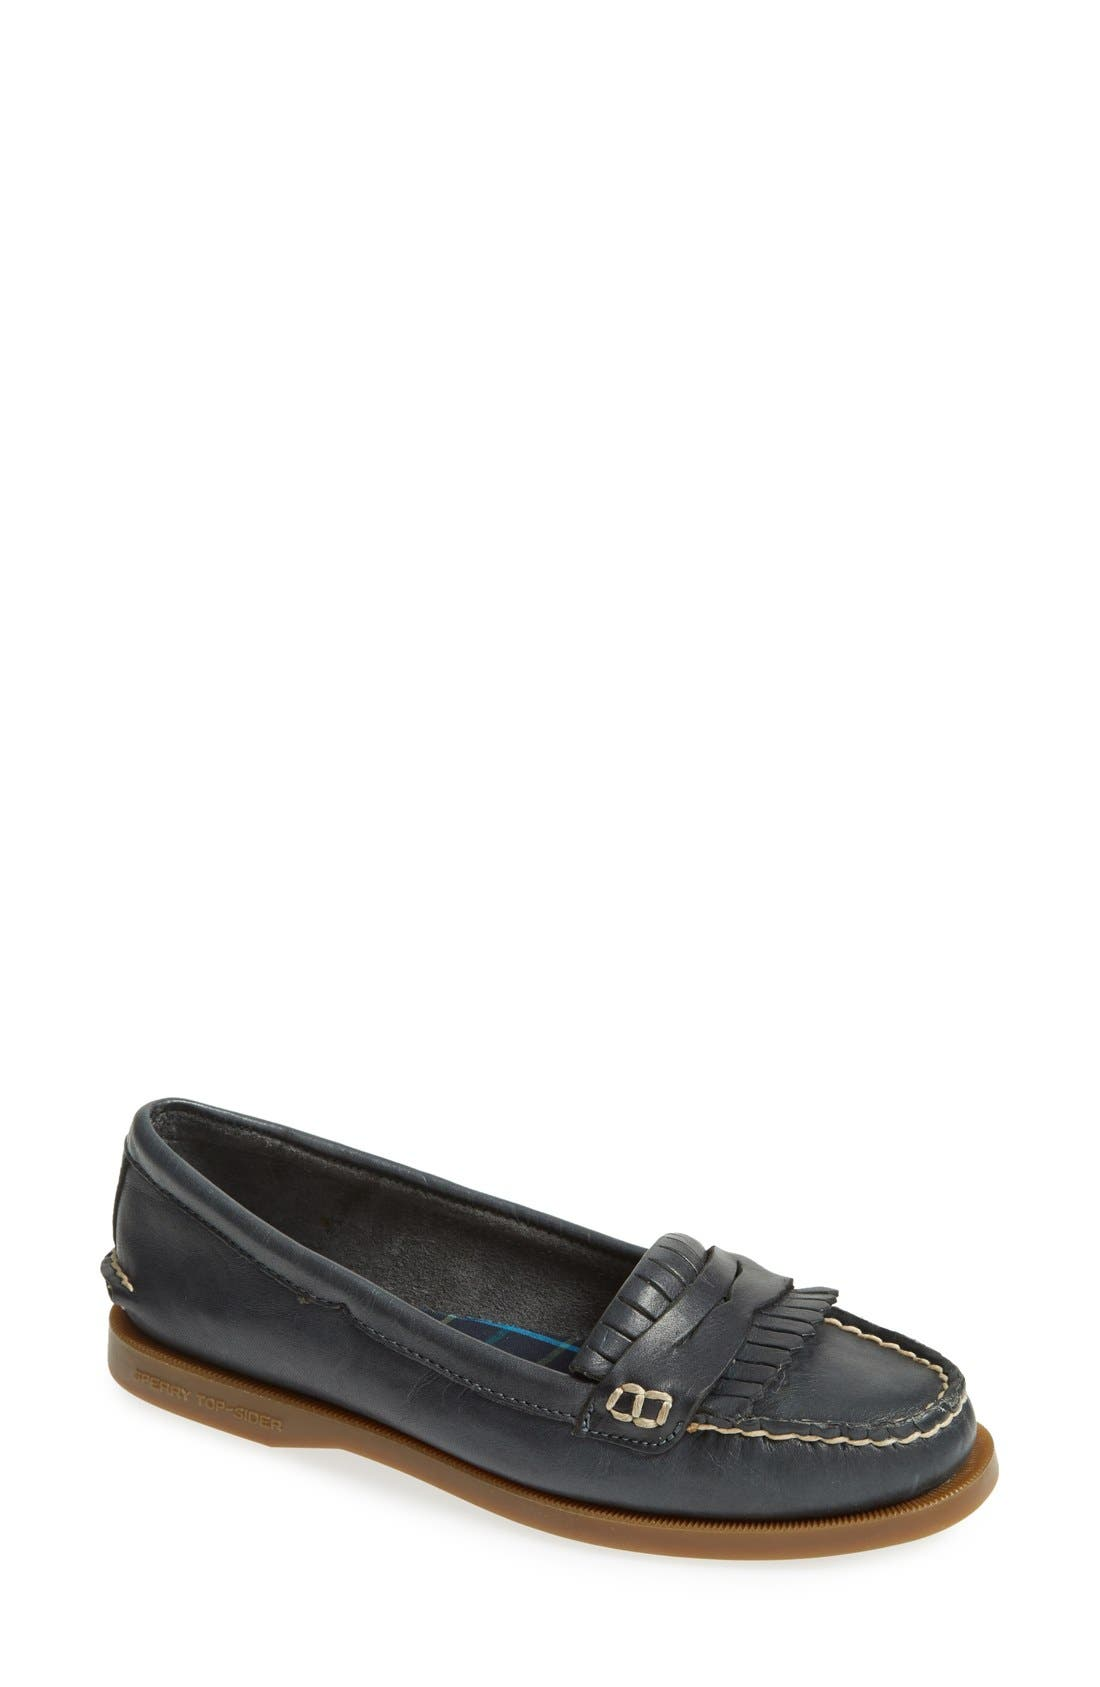 Alternate Image 1 Selected - Sperry Top-Sider® 'Avery' Leather Loafer (Women)